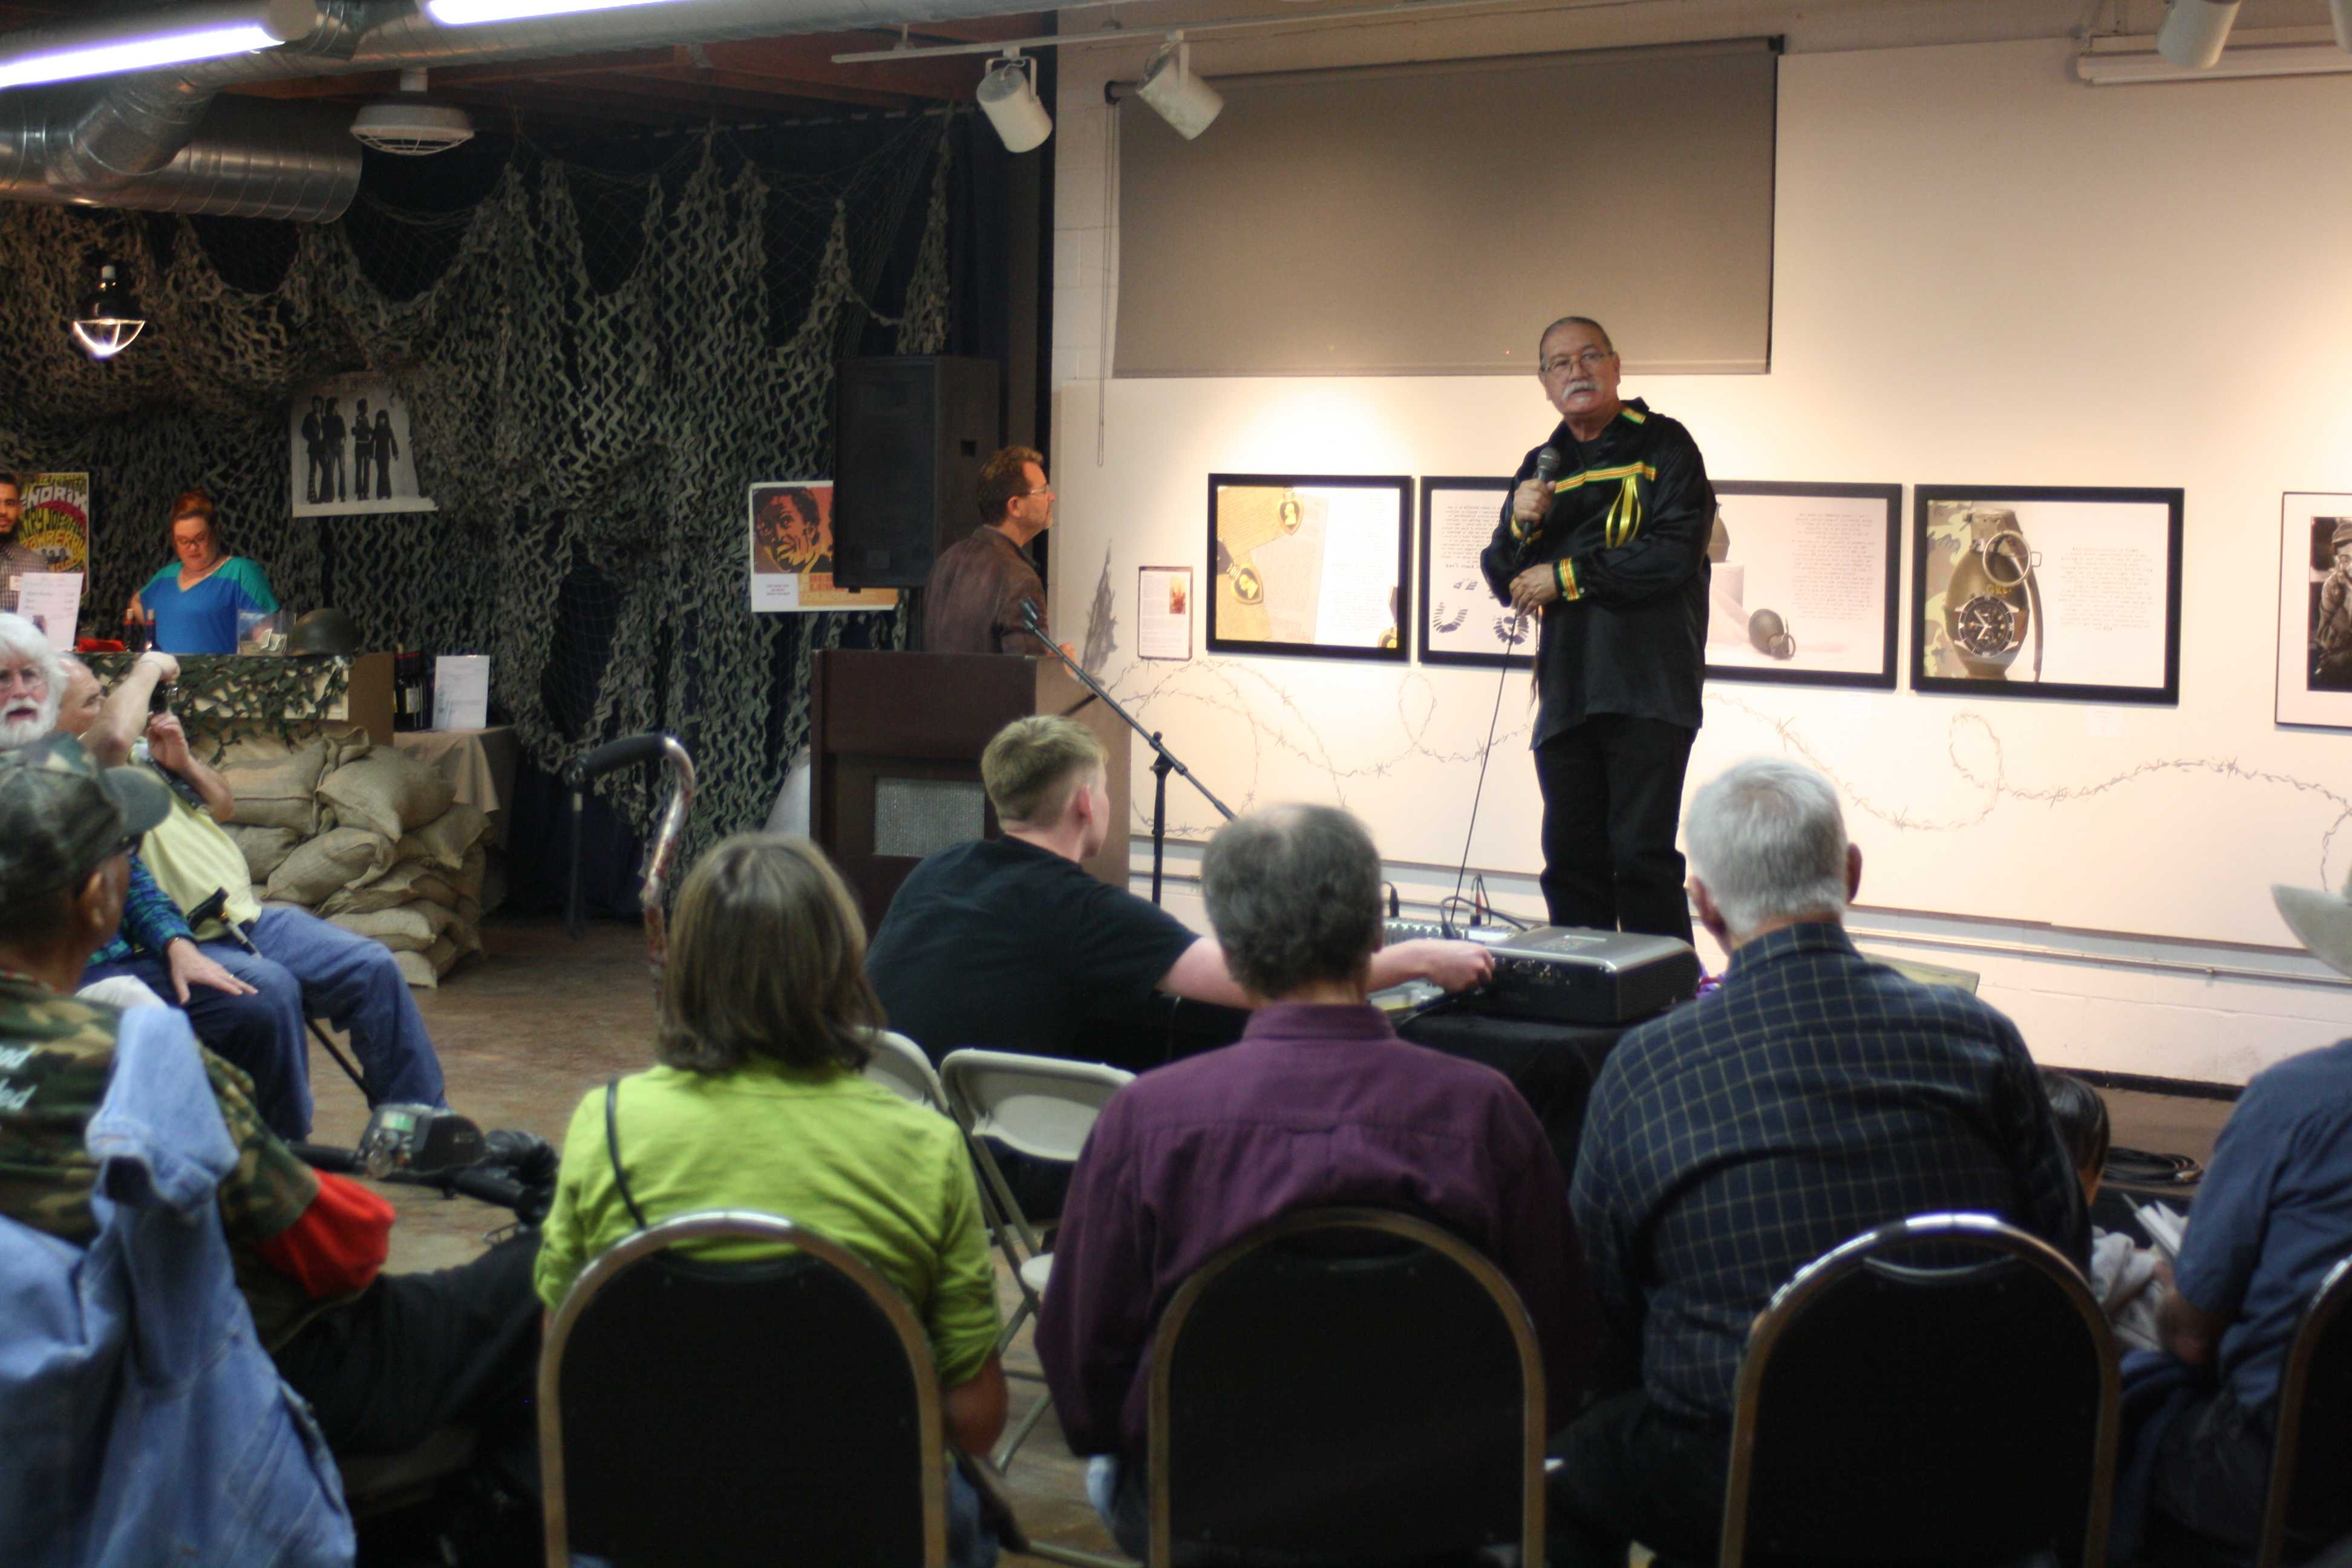 Local artist Moses Mora spoke at